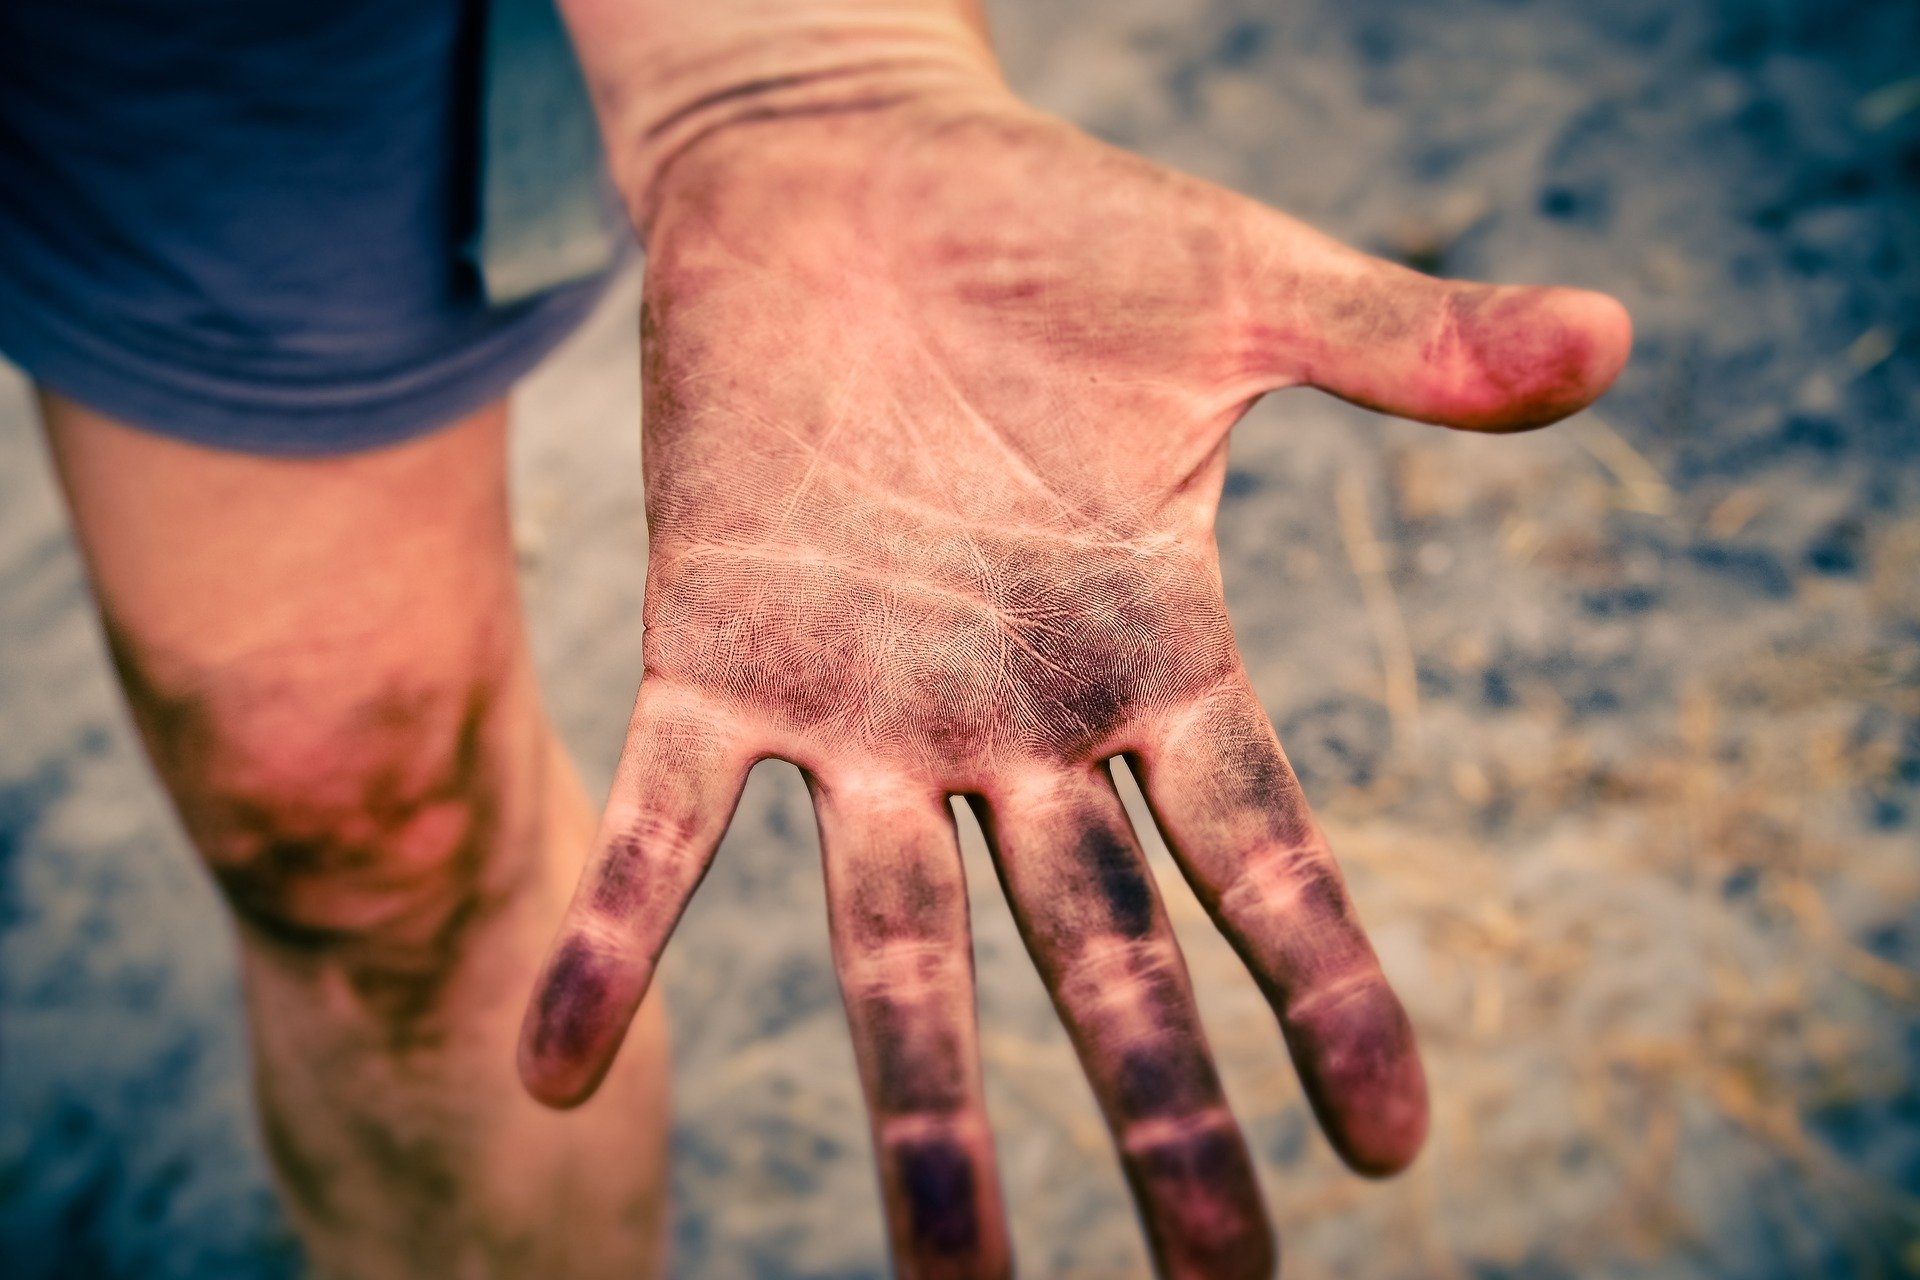 This Riddle is about being dirty. This is the picture of a dirty hand!